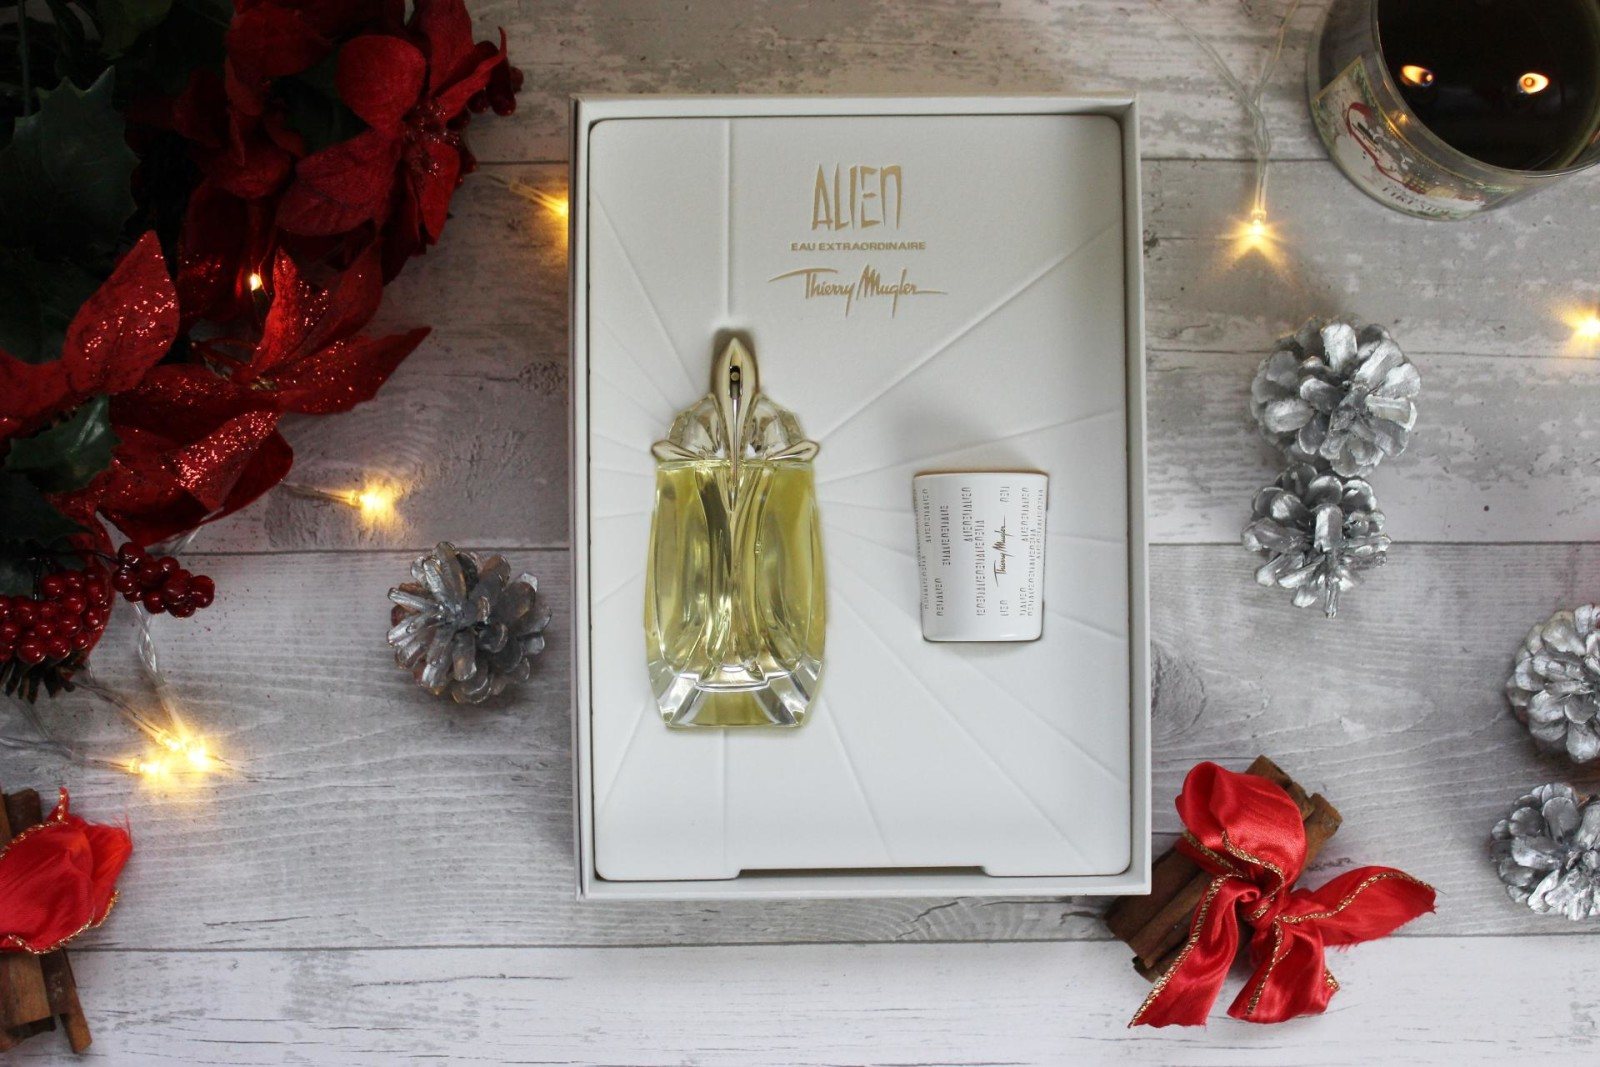 Alien Eau Extraordinaire Gift Set Fragrance Direct